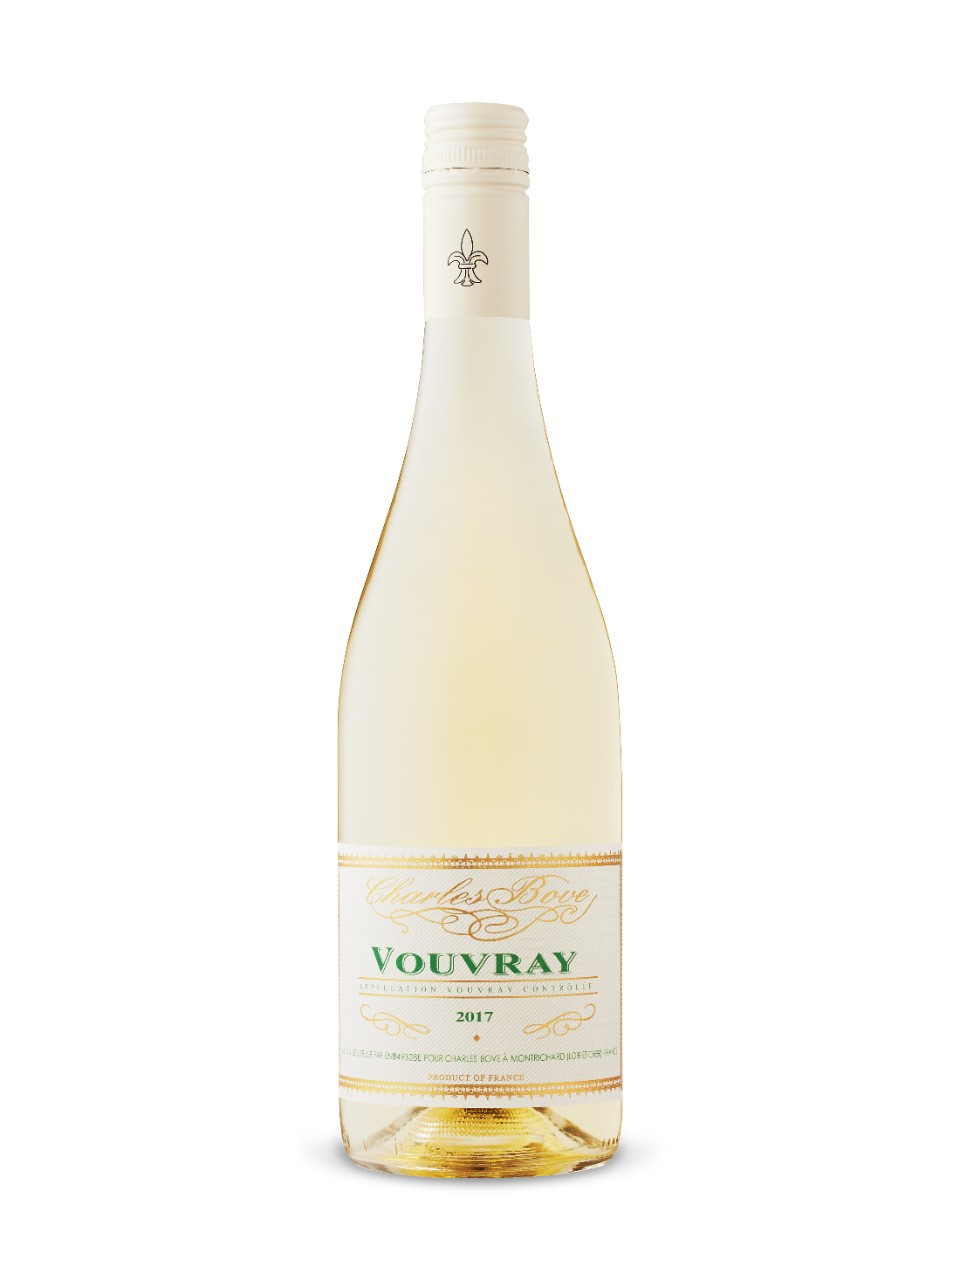 Charles Bove Vouvray 2014